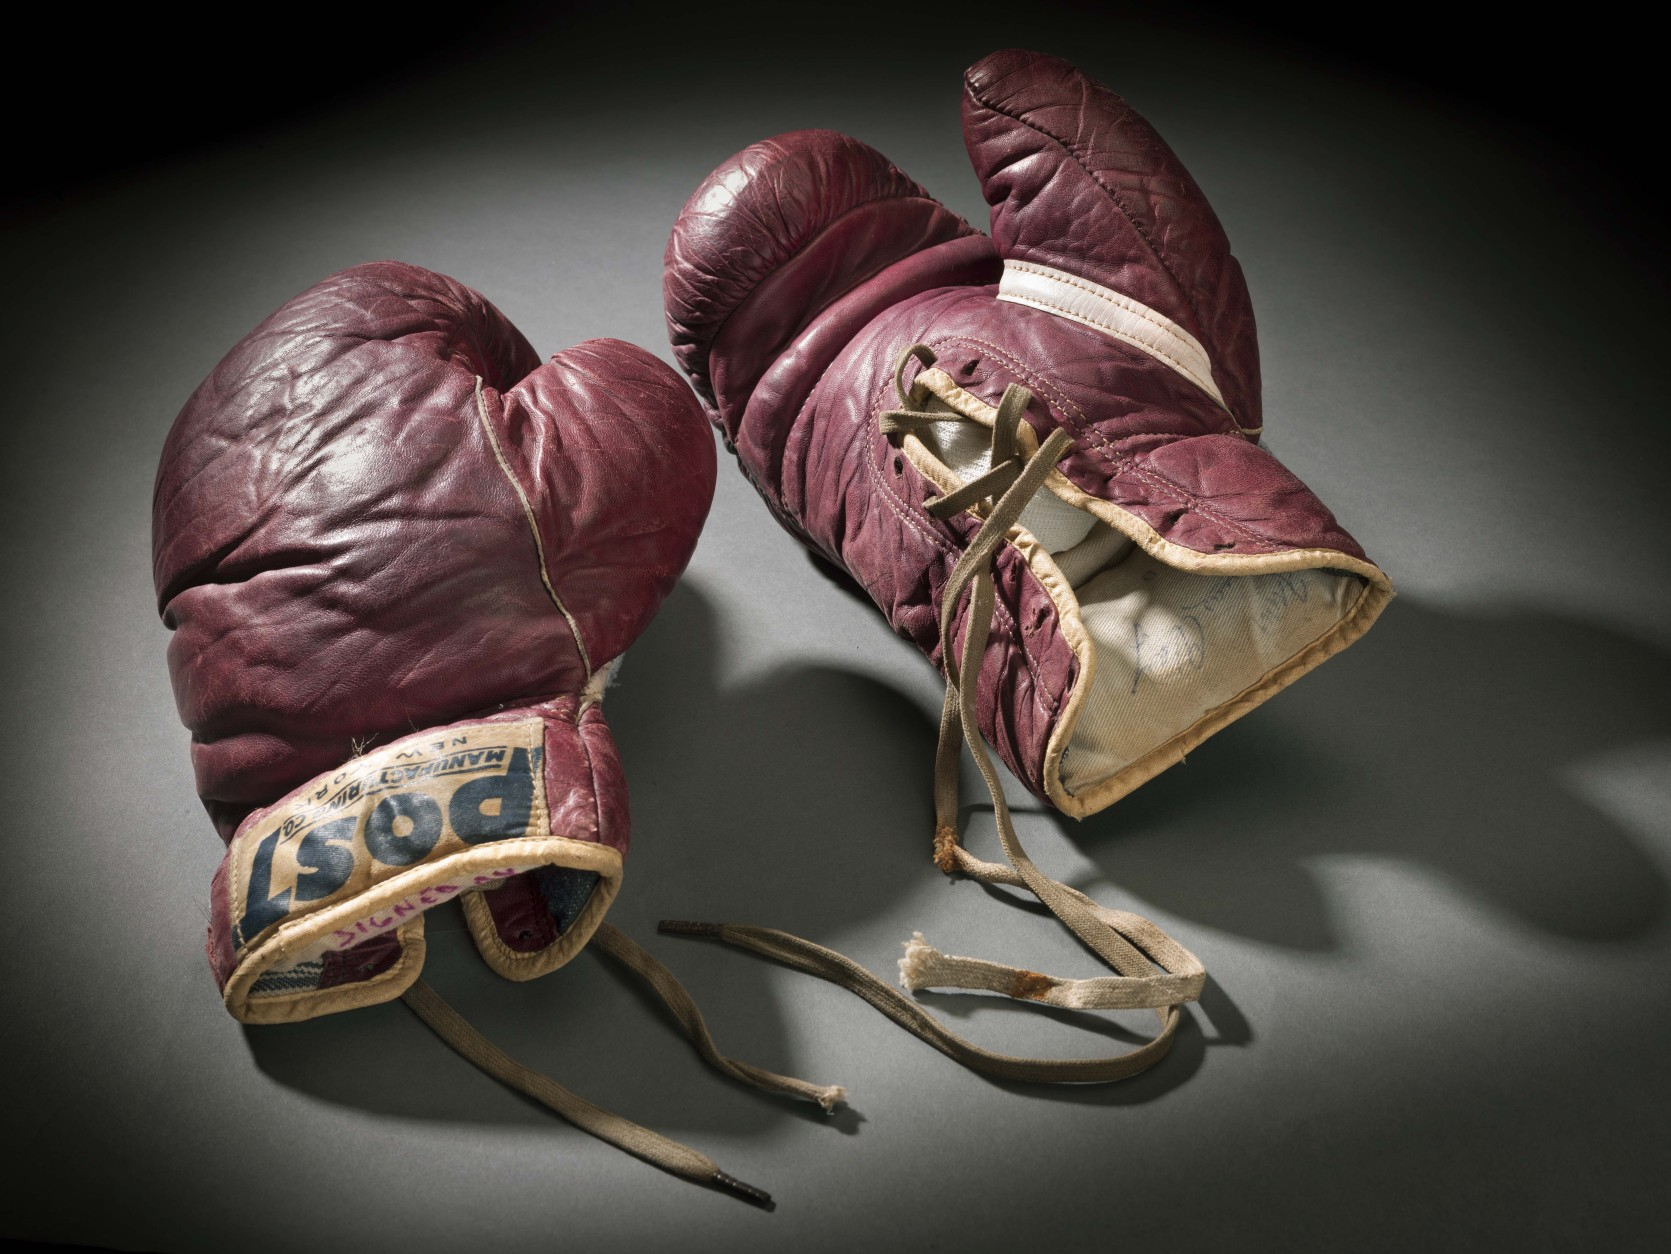 Cassius Clay (Muhammad Ali) Training Gloves, Post Manufacturing Co., circa 1960; leather, cotton, L. 10 x W. 5 1/2 x D. 4 in.  Studio photograph on gray background by NASM Photographer Eric Long, February 26, 2013, at 3400 Pennsy Drive, Washington, DC.  Credit: Collection of the Smithsonian National Museum of African American History and Culture (2012.173.3ab)